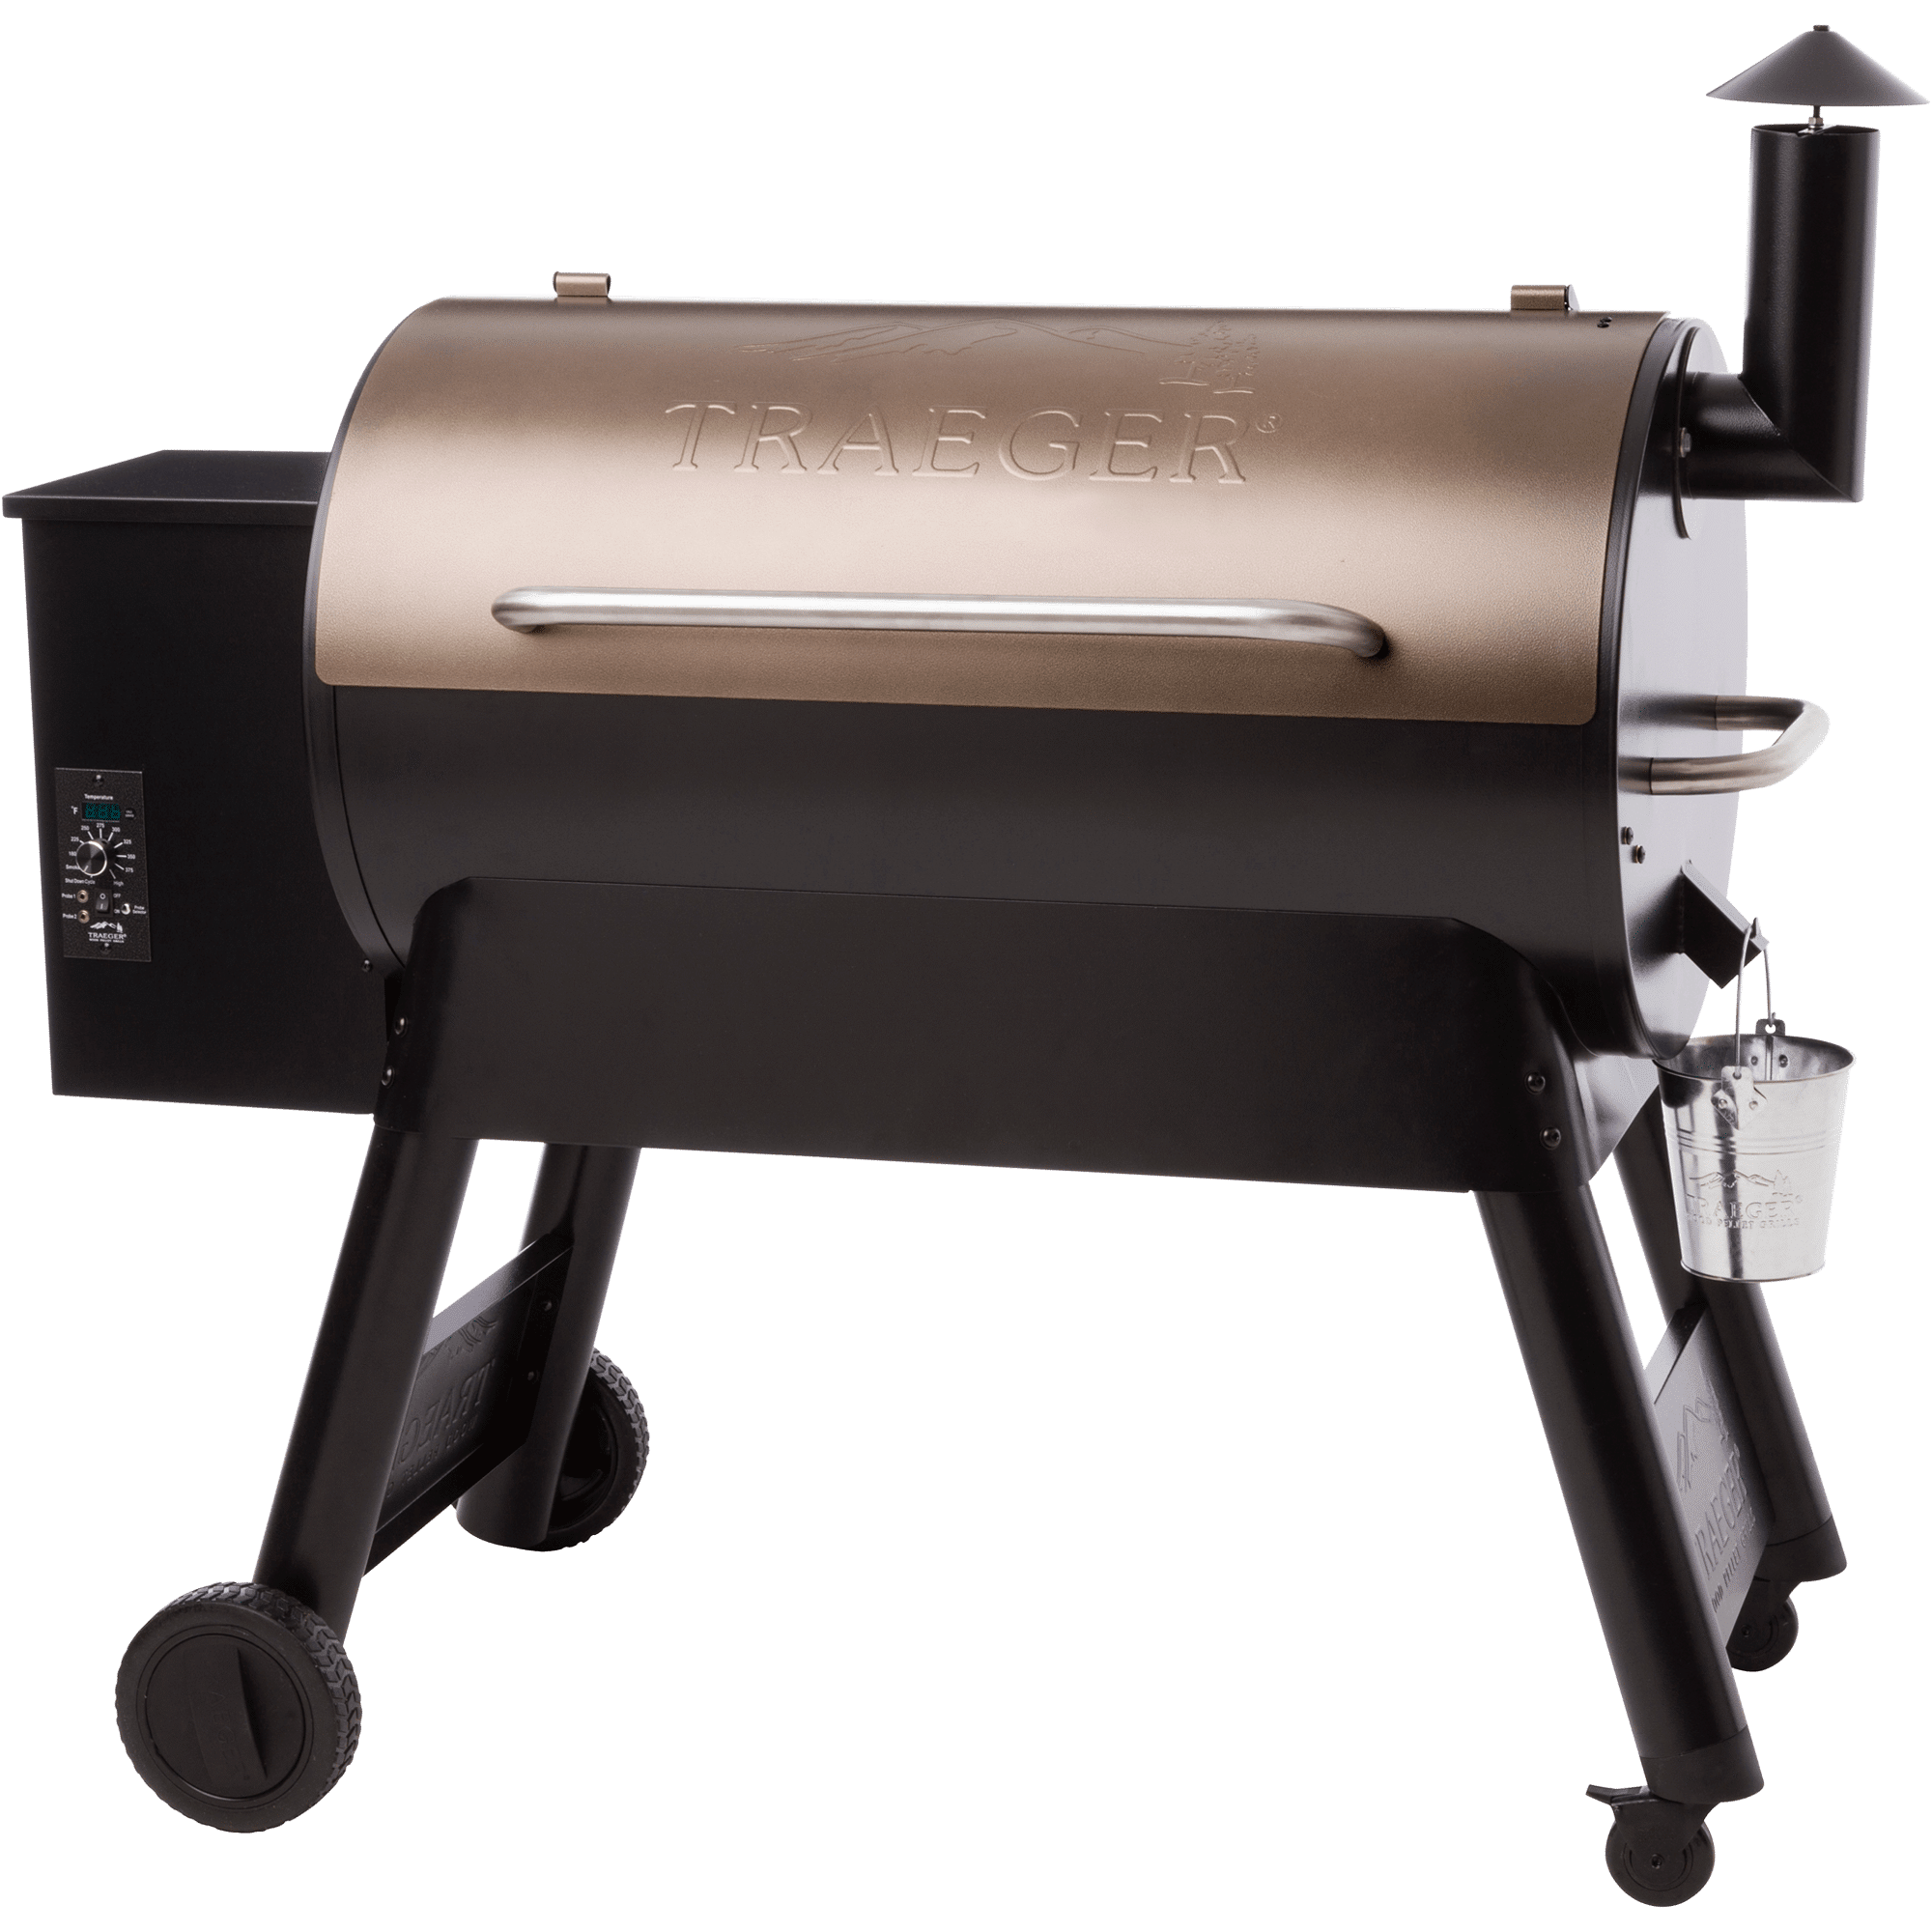 Traeger Grills Pro Series 34 Pellet Grill Review And